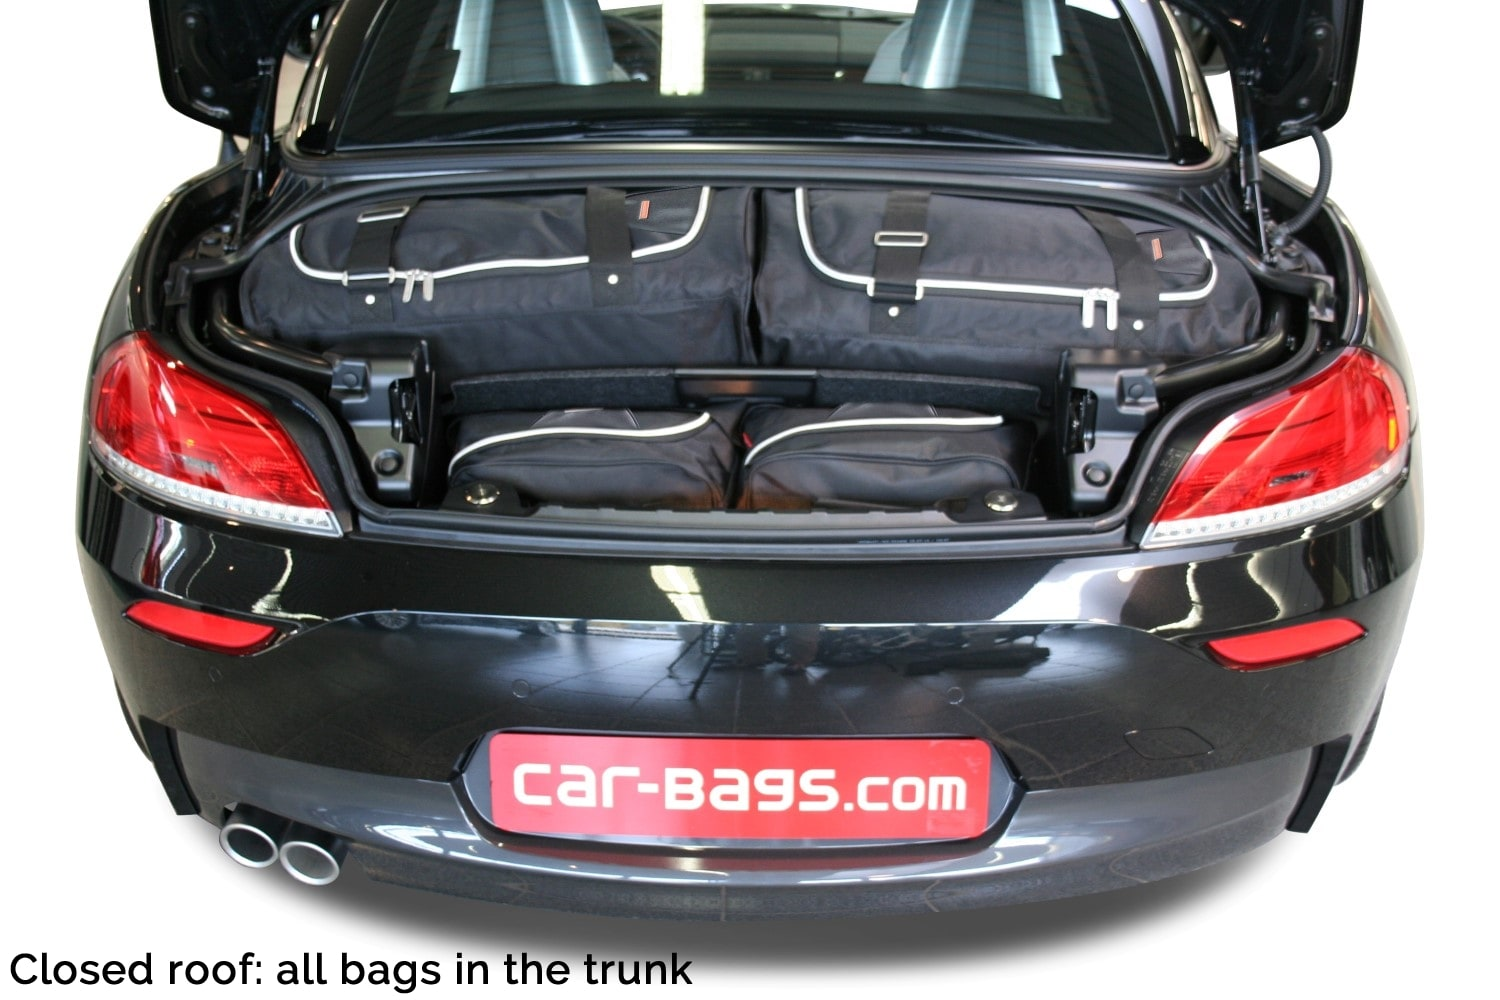 z4 bmw z4 e89 2009 present car bags travel bags. Black Bedroom Furniture Sets. Home Design Ideas